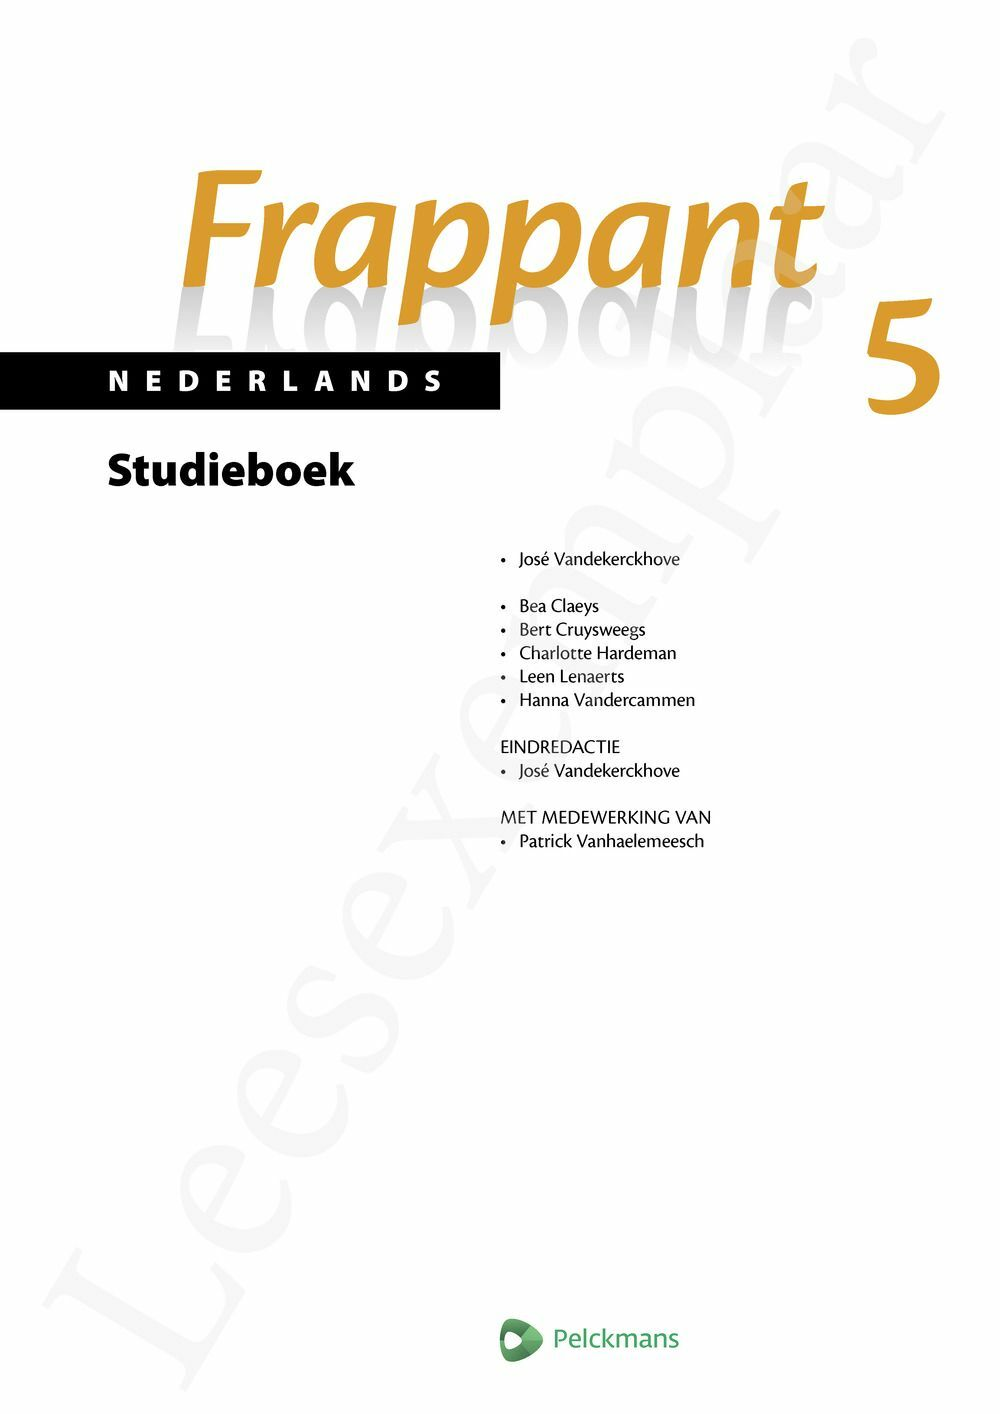 Preview: Frappant Nederlands 5 aso studieboek